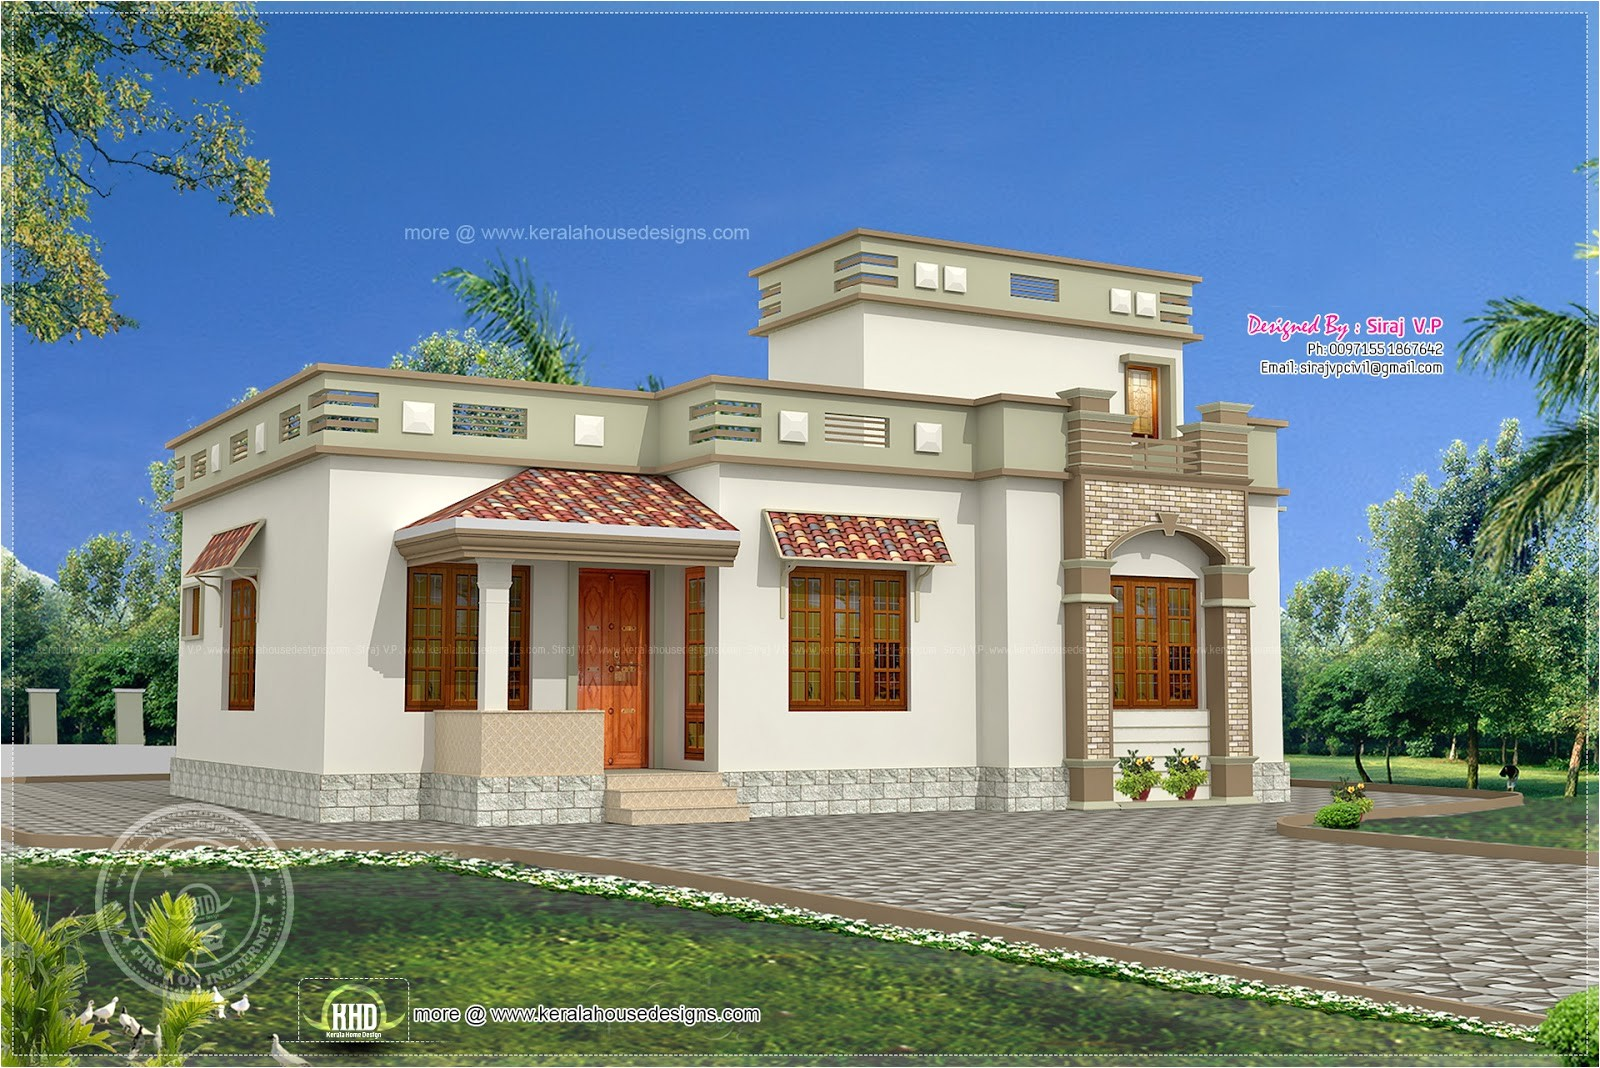 Low Budget Home Plans In Kerala Low Budget Kerala Style Home In 1075 Sq Feet House